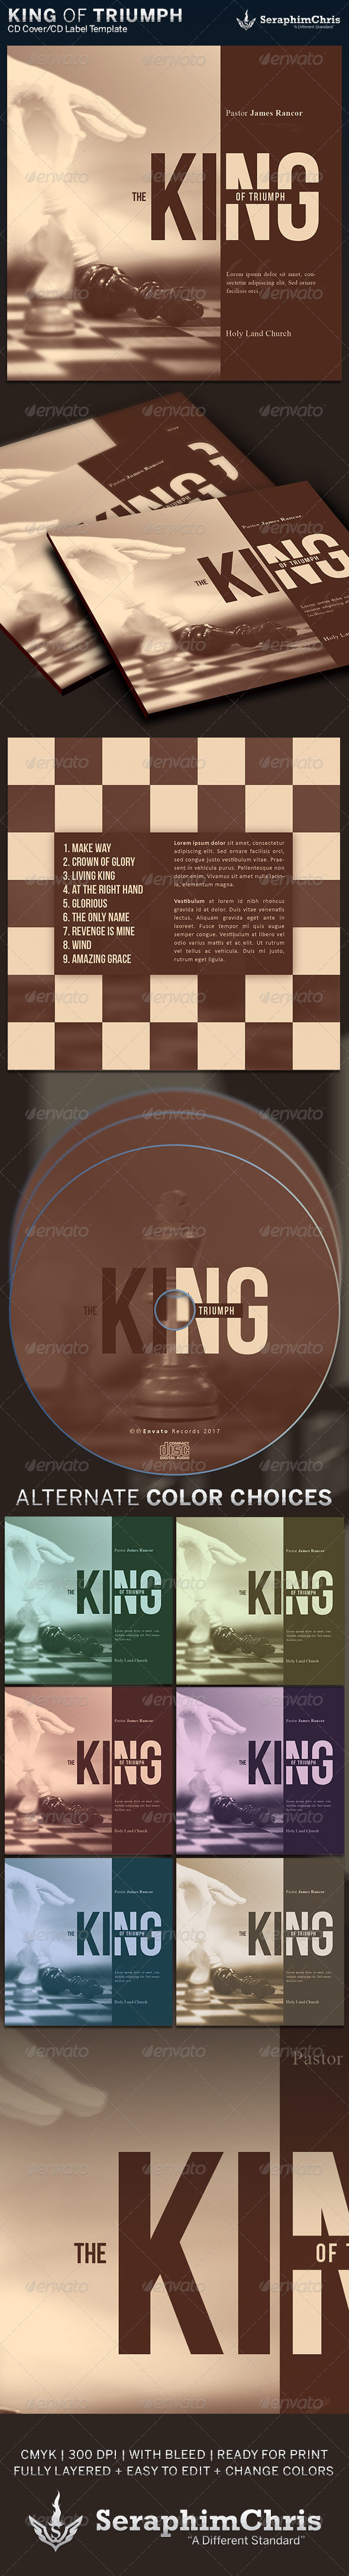 GraphicRiver King of Triumph CD Cover Artwork Template 6475736